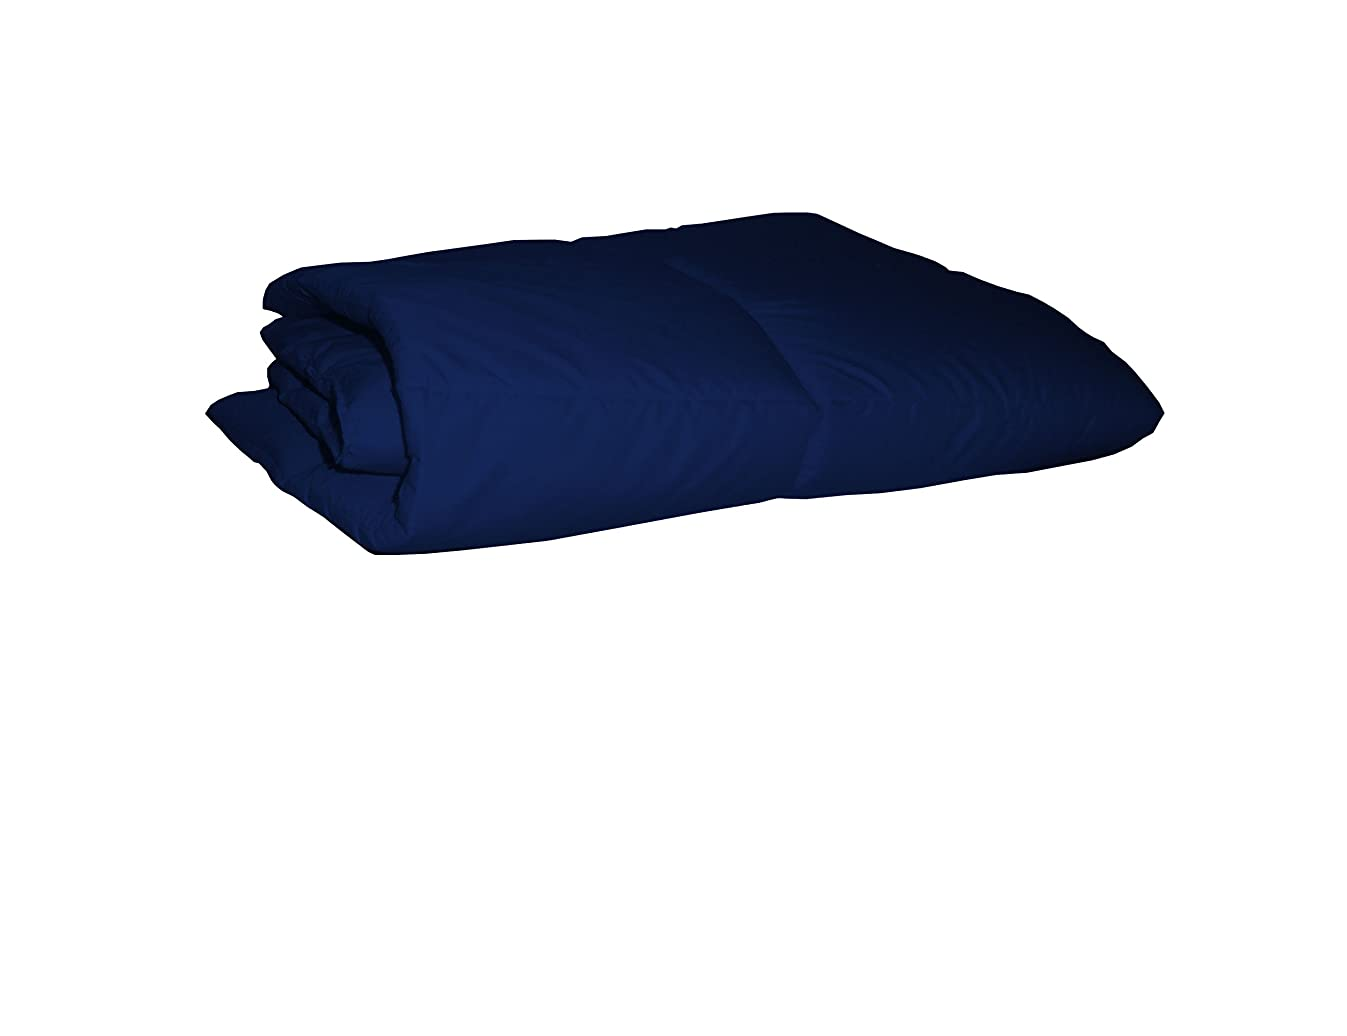 Baby Doll Bedding Baby and Toddler Comfy Comforter, Navy